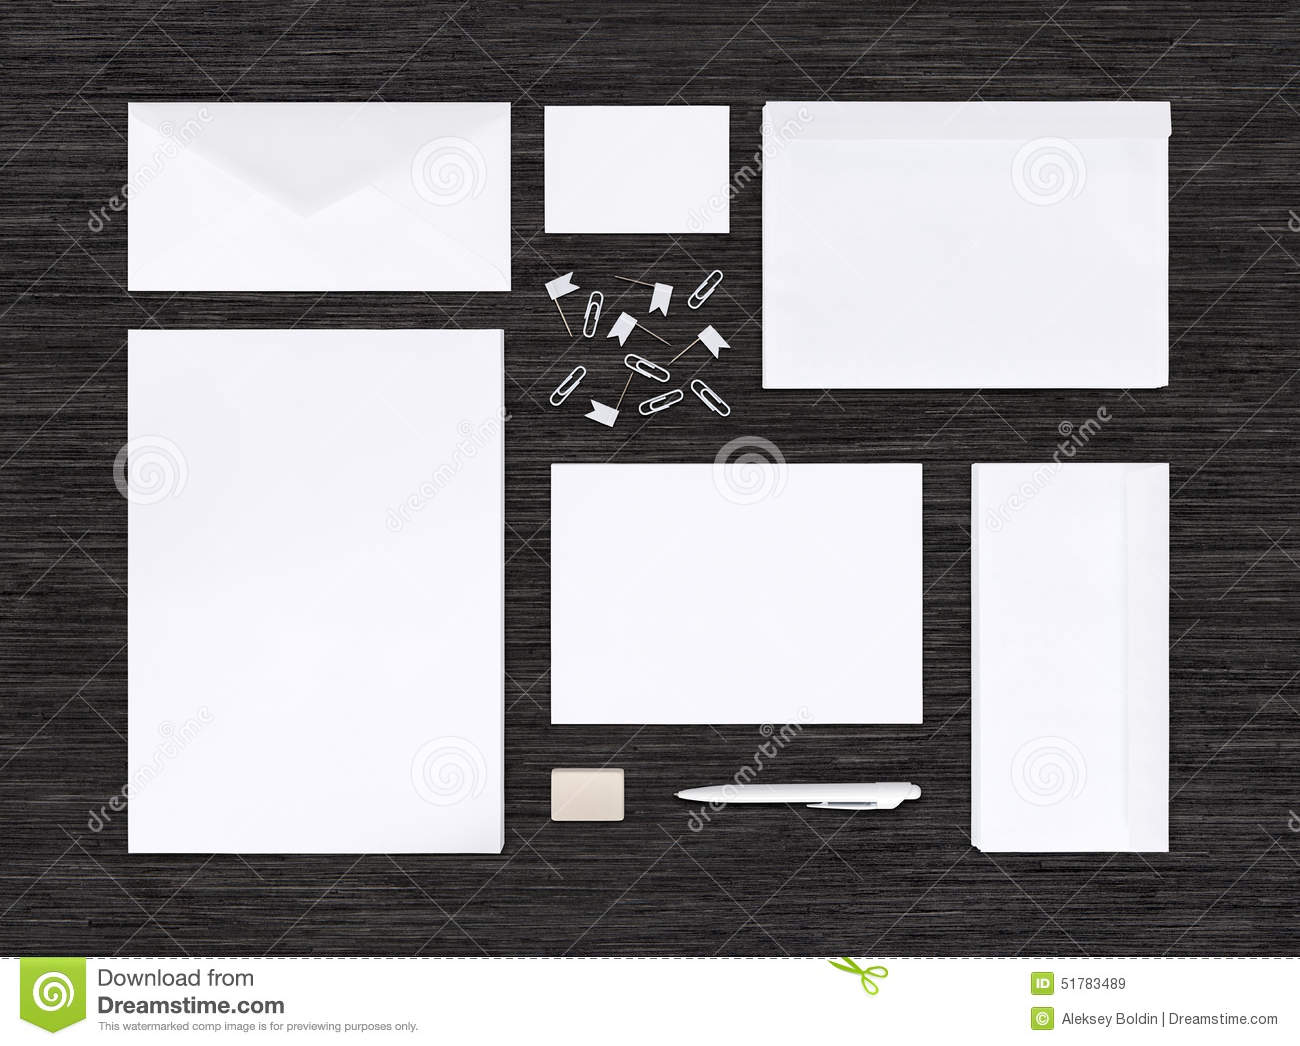 Top view of branding identity mockup and template on black table